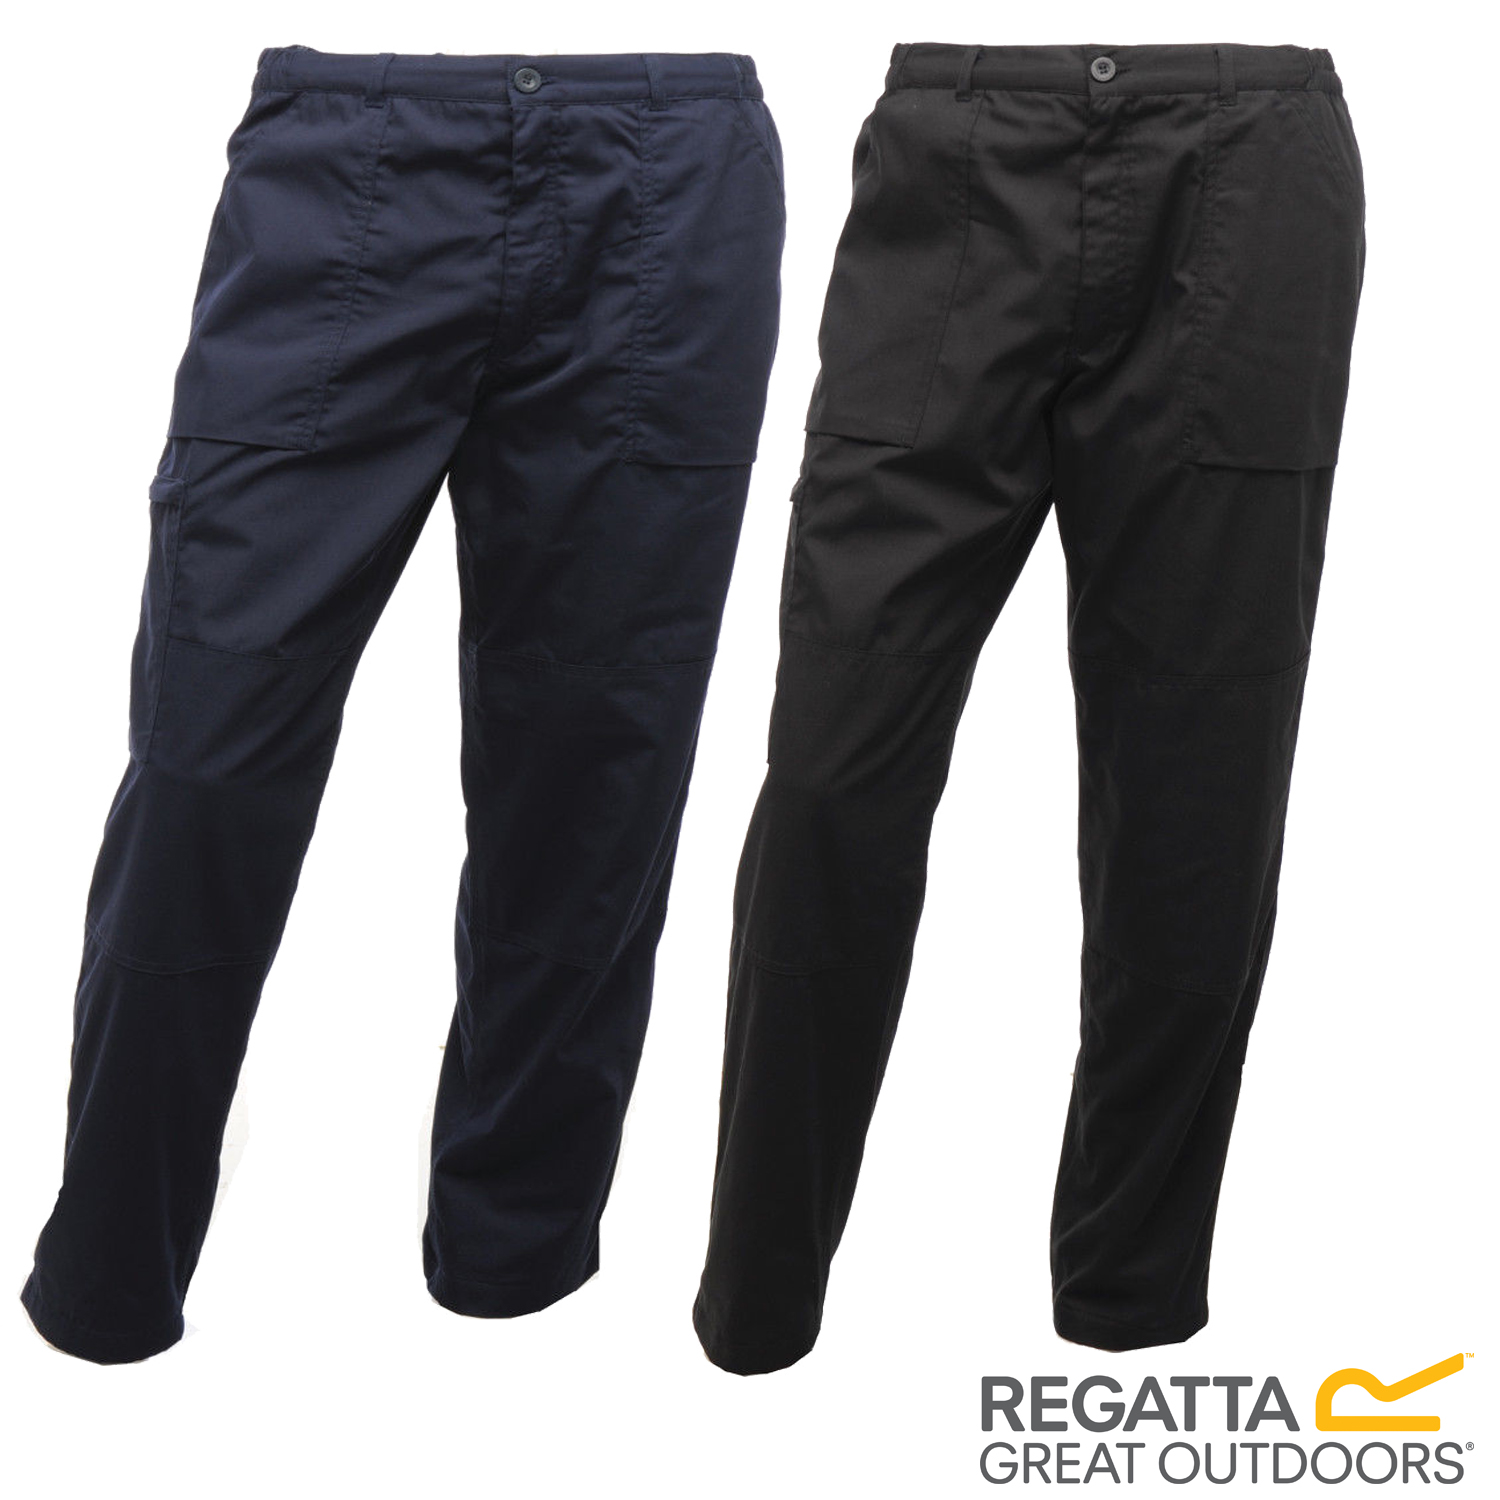 REGATTA LINED ACTION TROUSERS WORKWEAR DURABLE WATER REPELLENT MULTI POCKET LONG